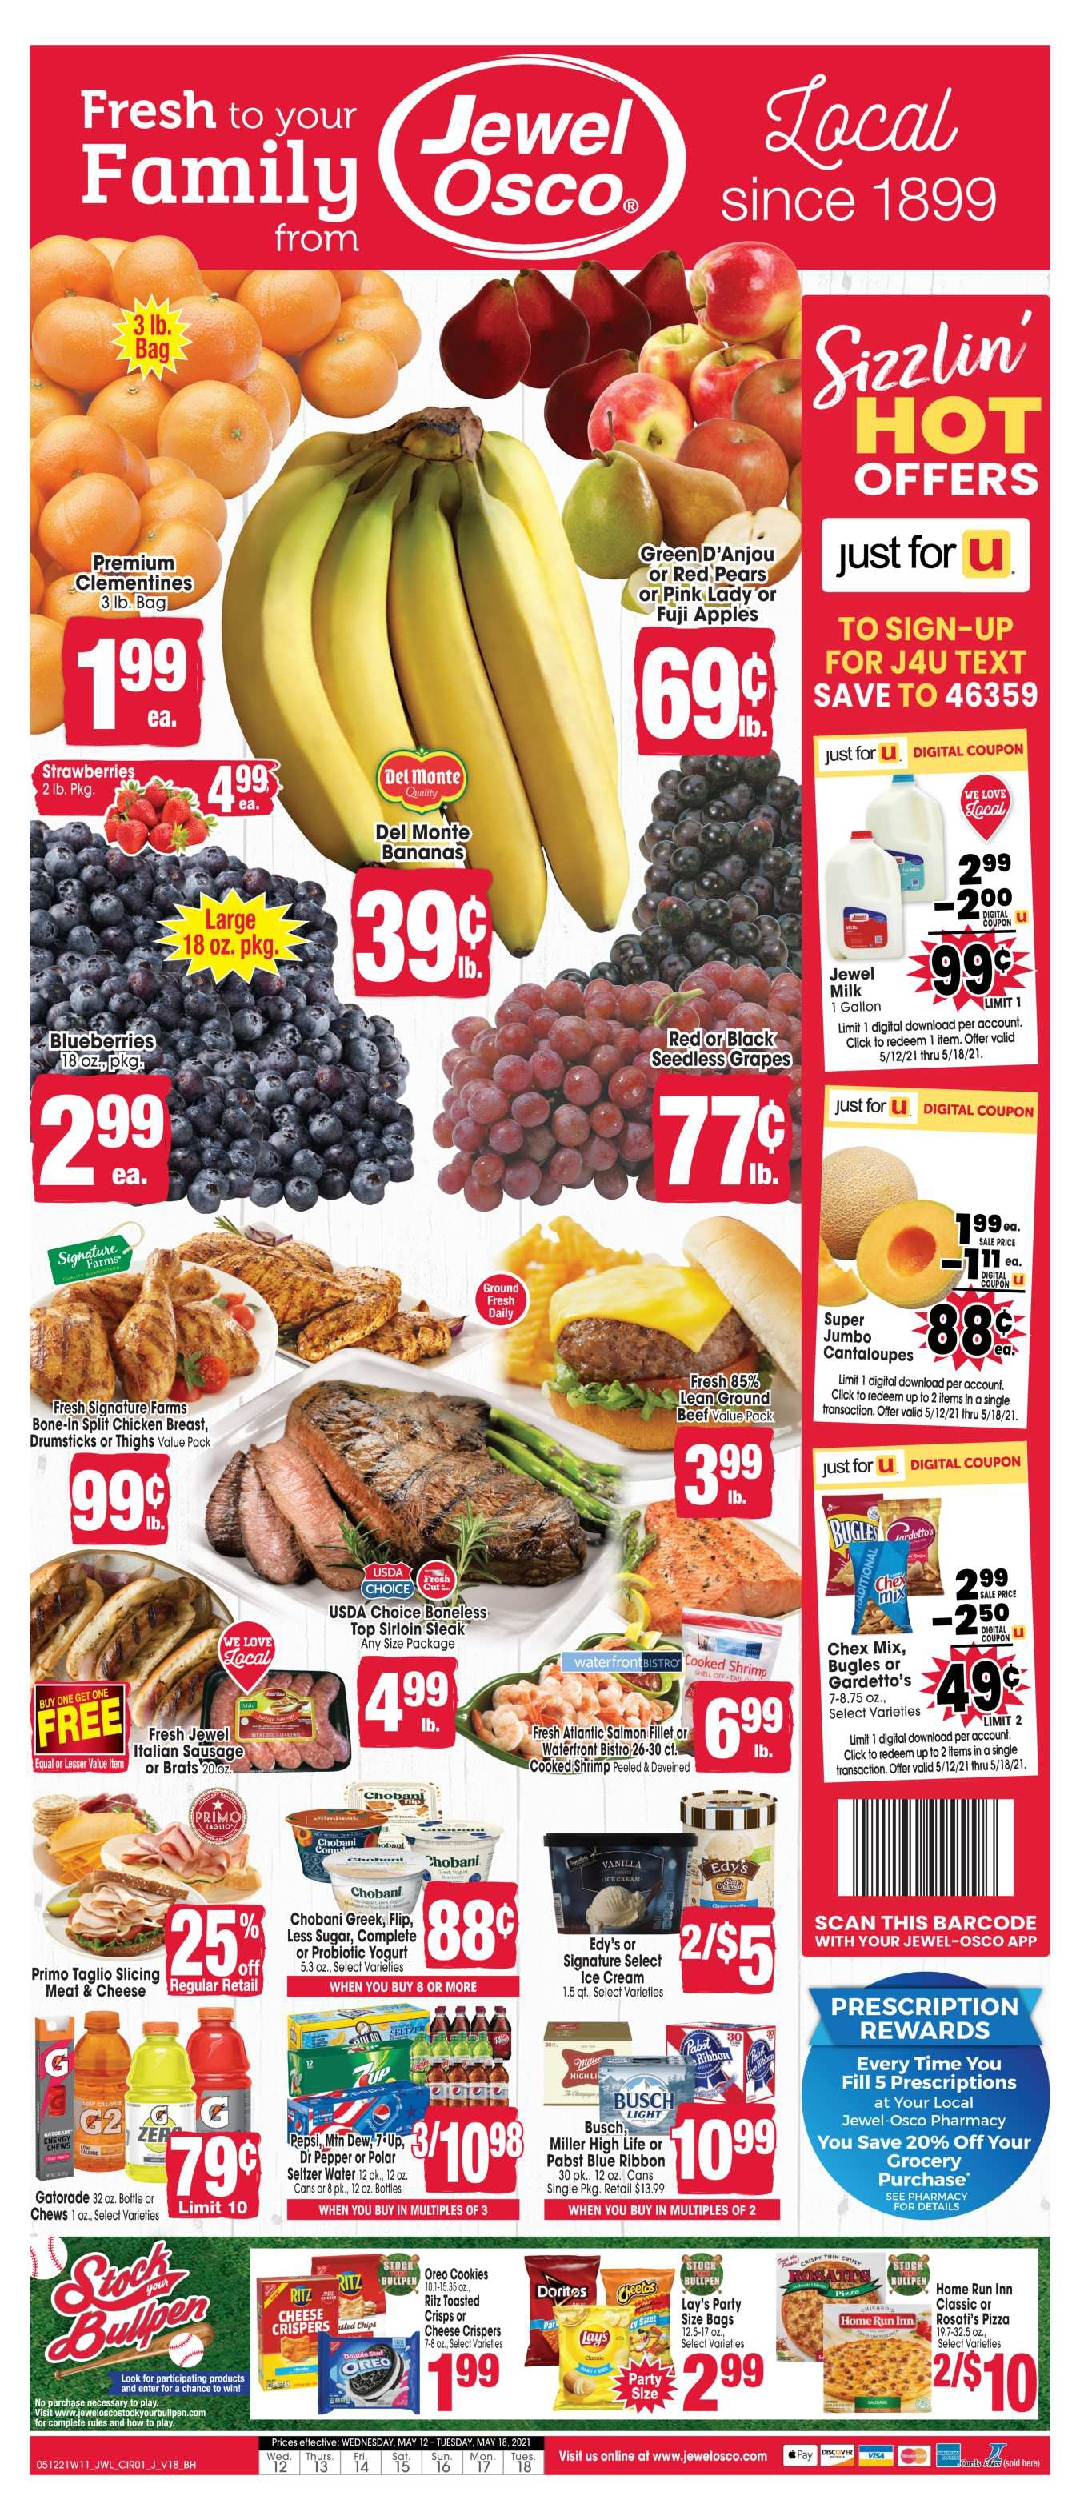 Jewel Osco Weekly Ad 5/12/21-5/18/21 Sneak Peek Preview